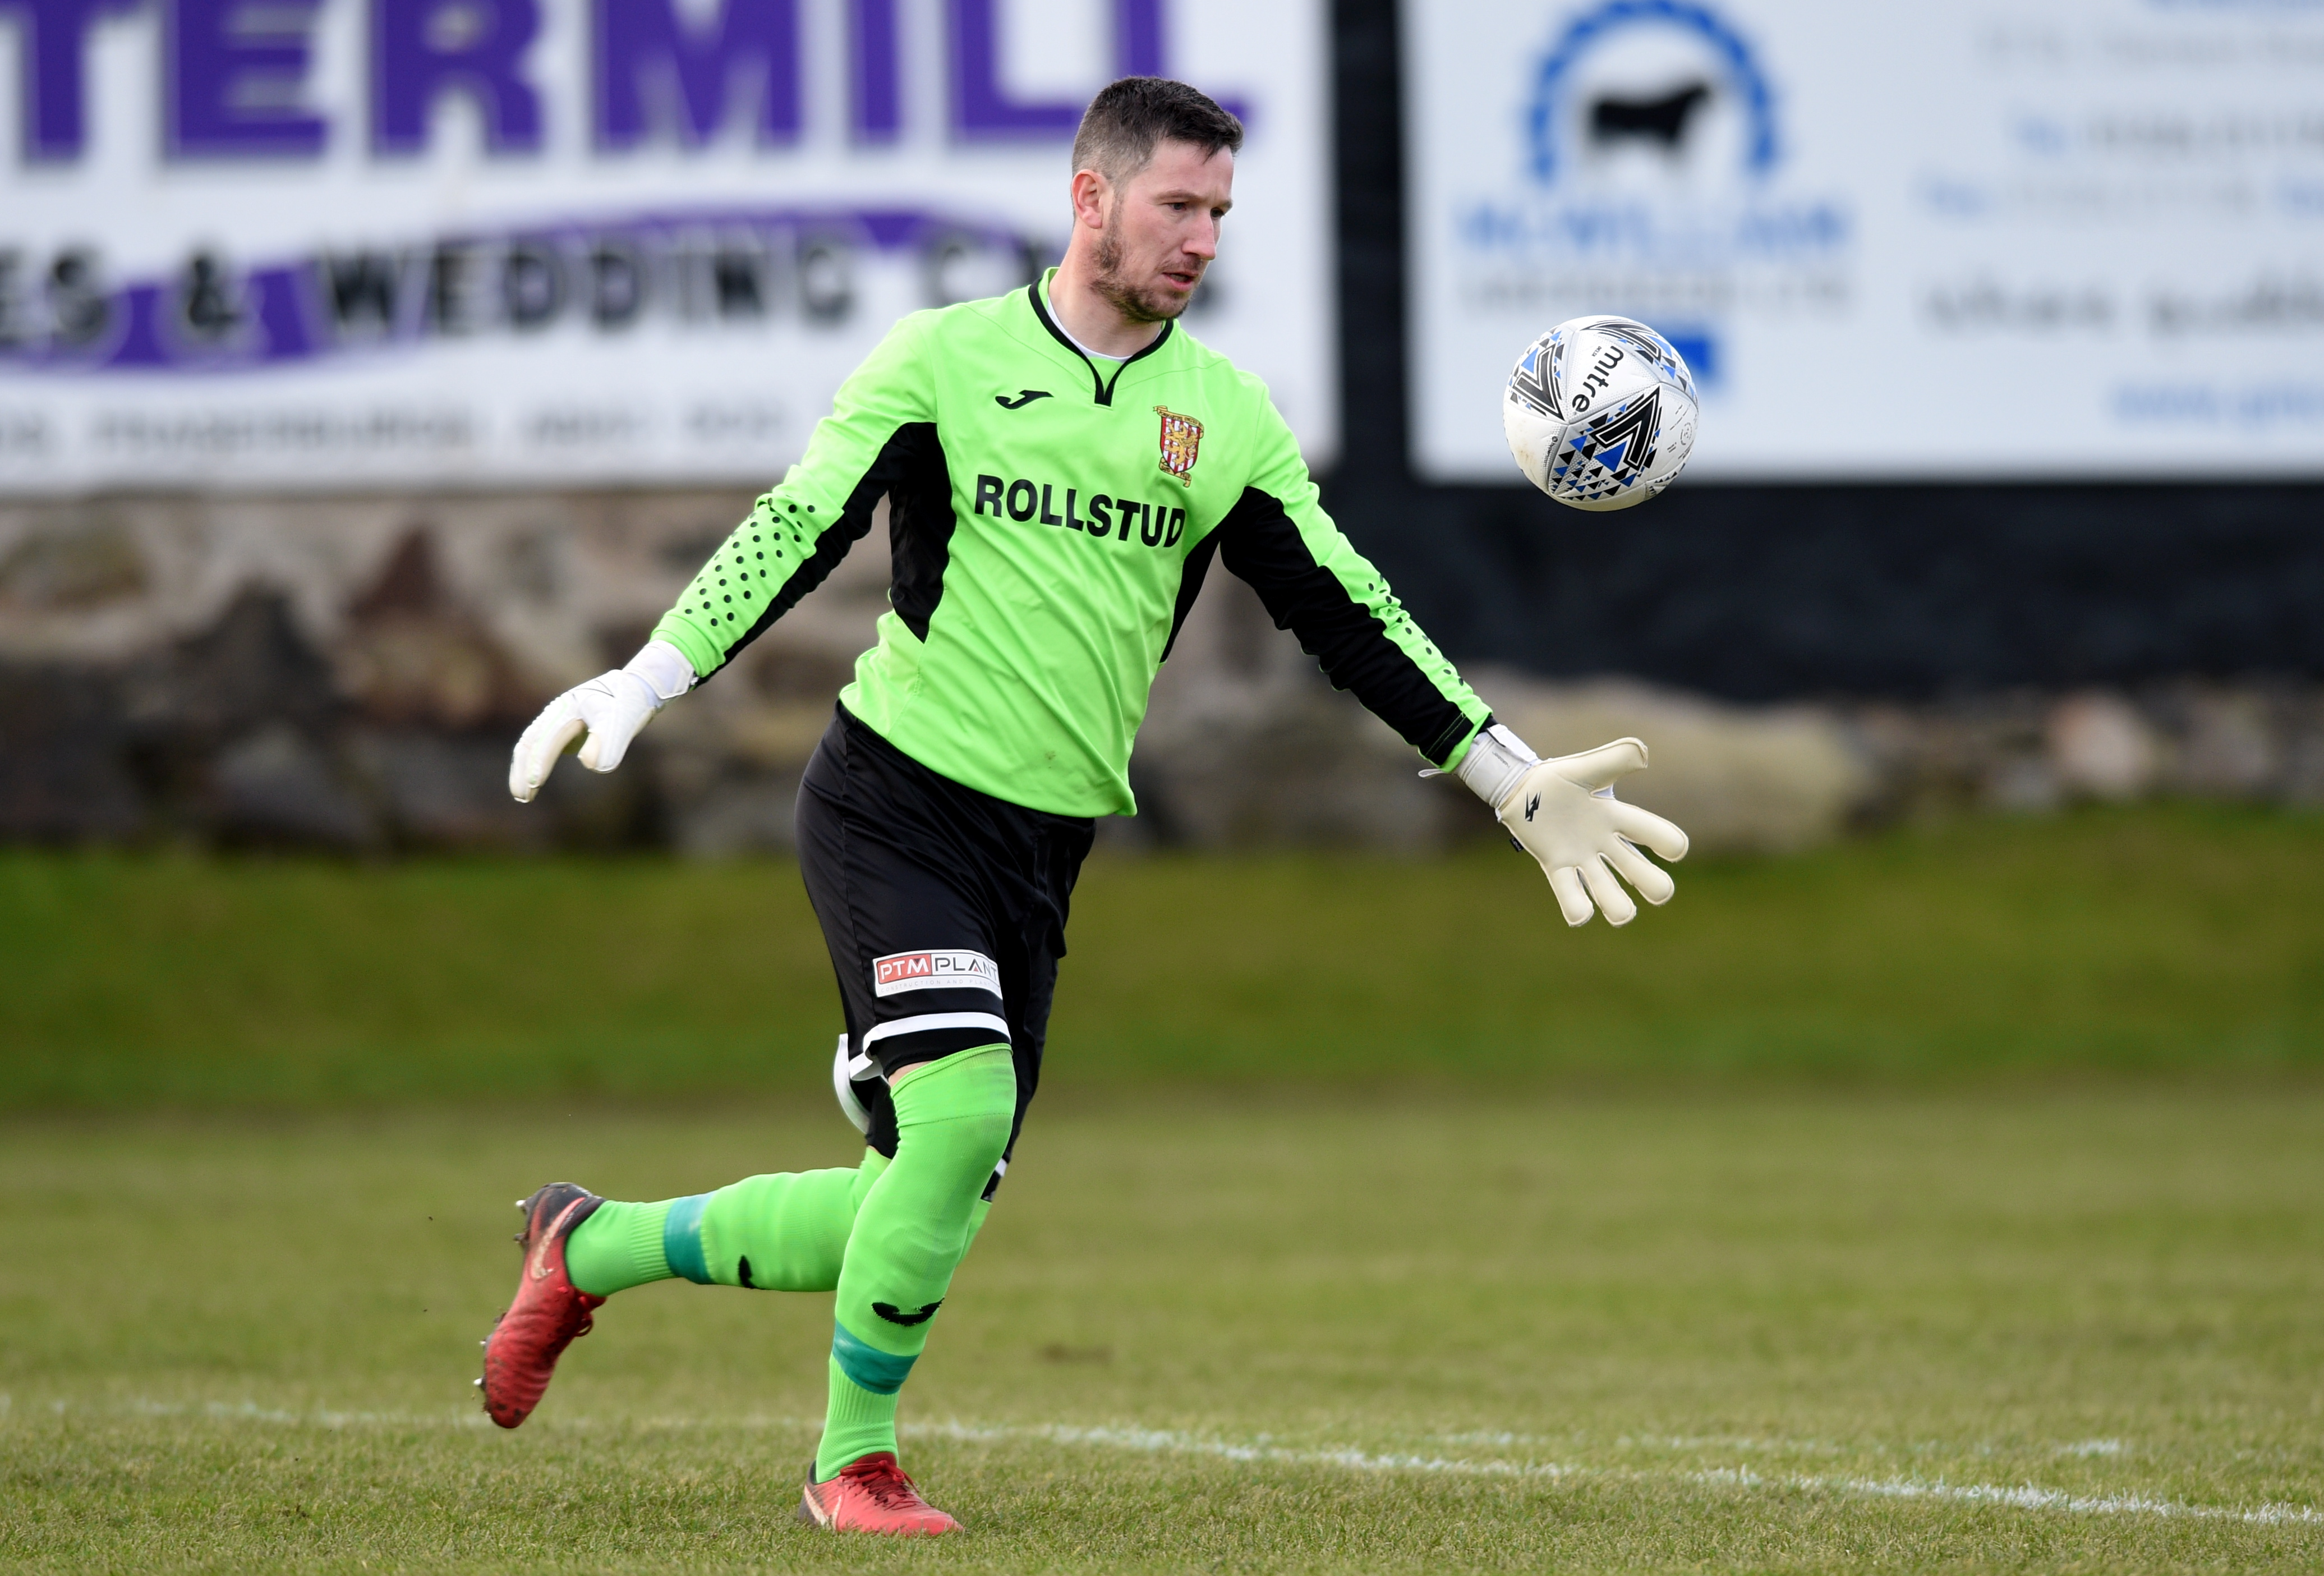 Formartine United goalkeeper Kevin Main Picture by Darrell Benns.